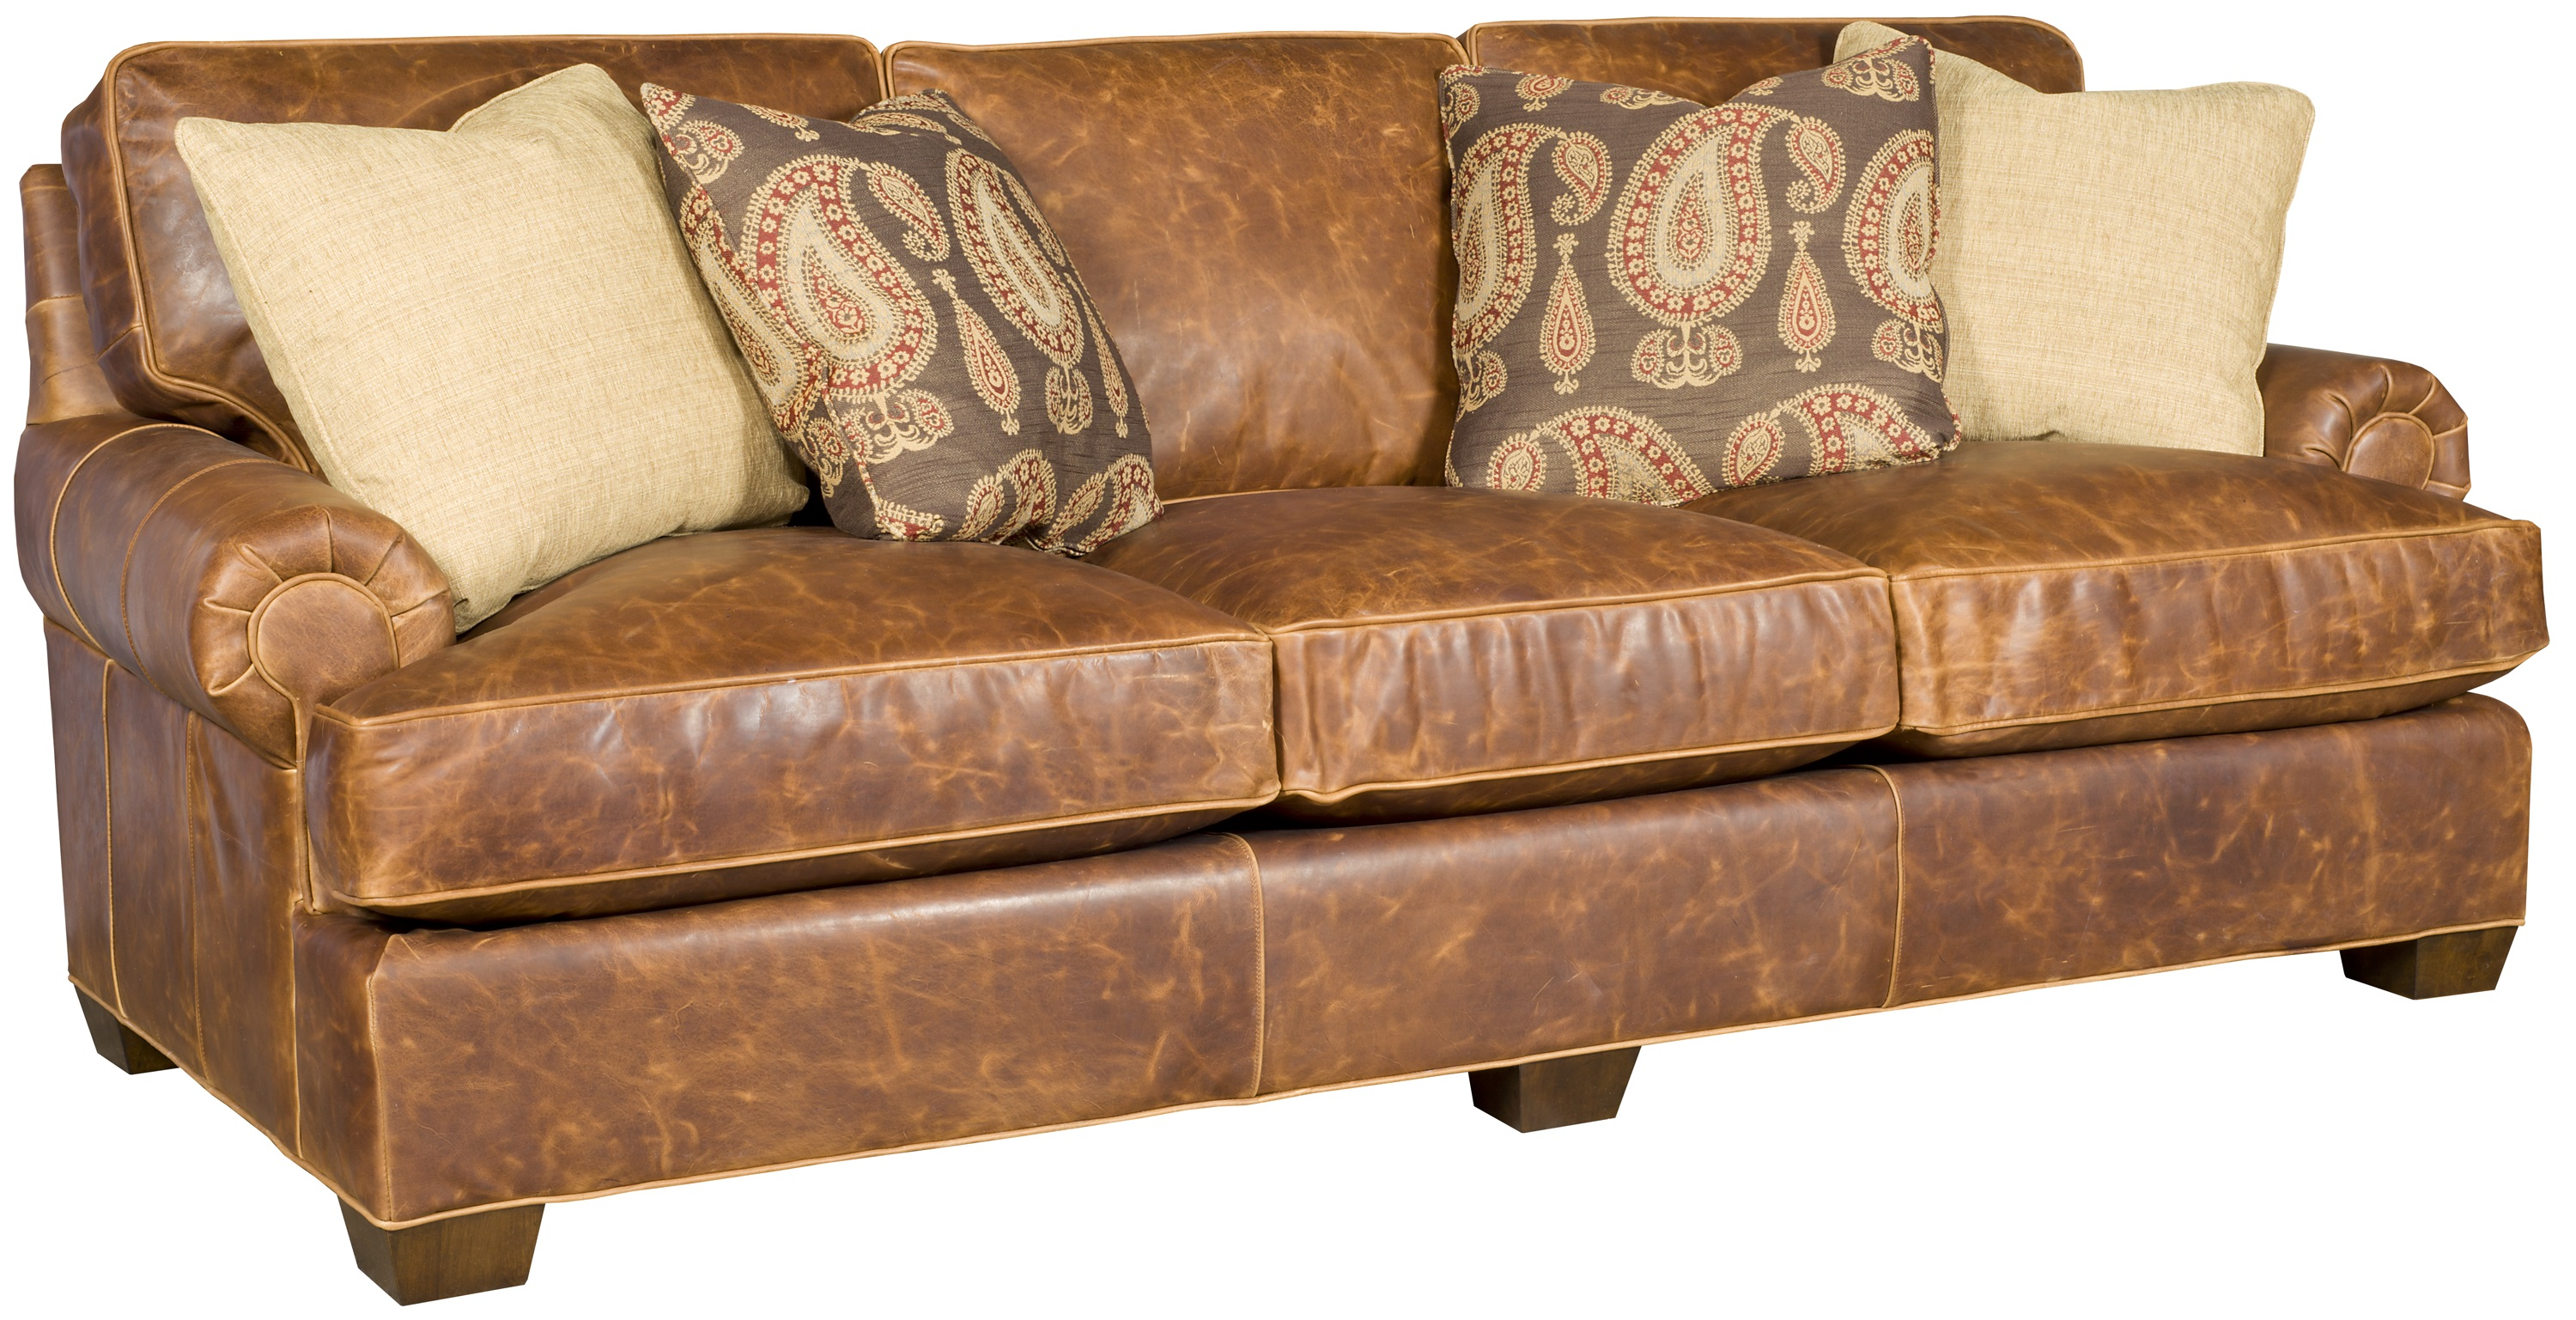 Southwestern Style Sofas Couches Loveseats Fiesta Furnishings